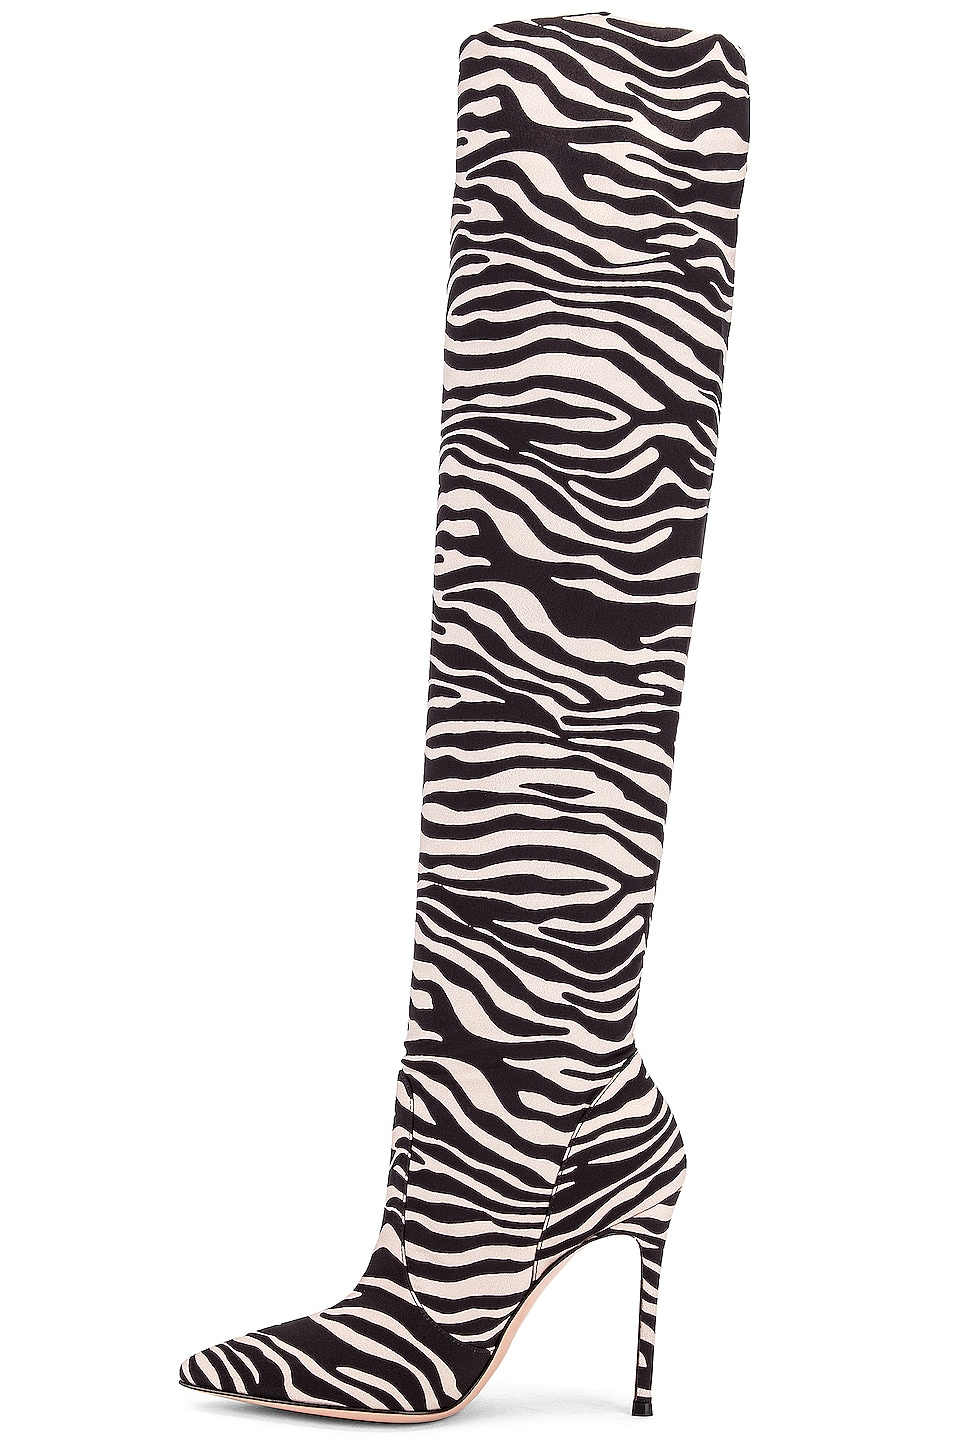 Image 5 of Gianvito Rossi Suede Knee High Boots in Zebra